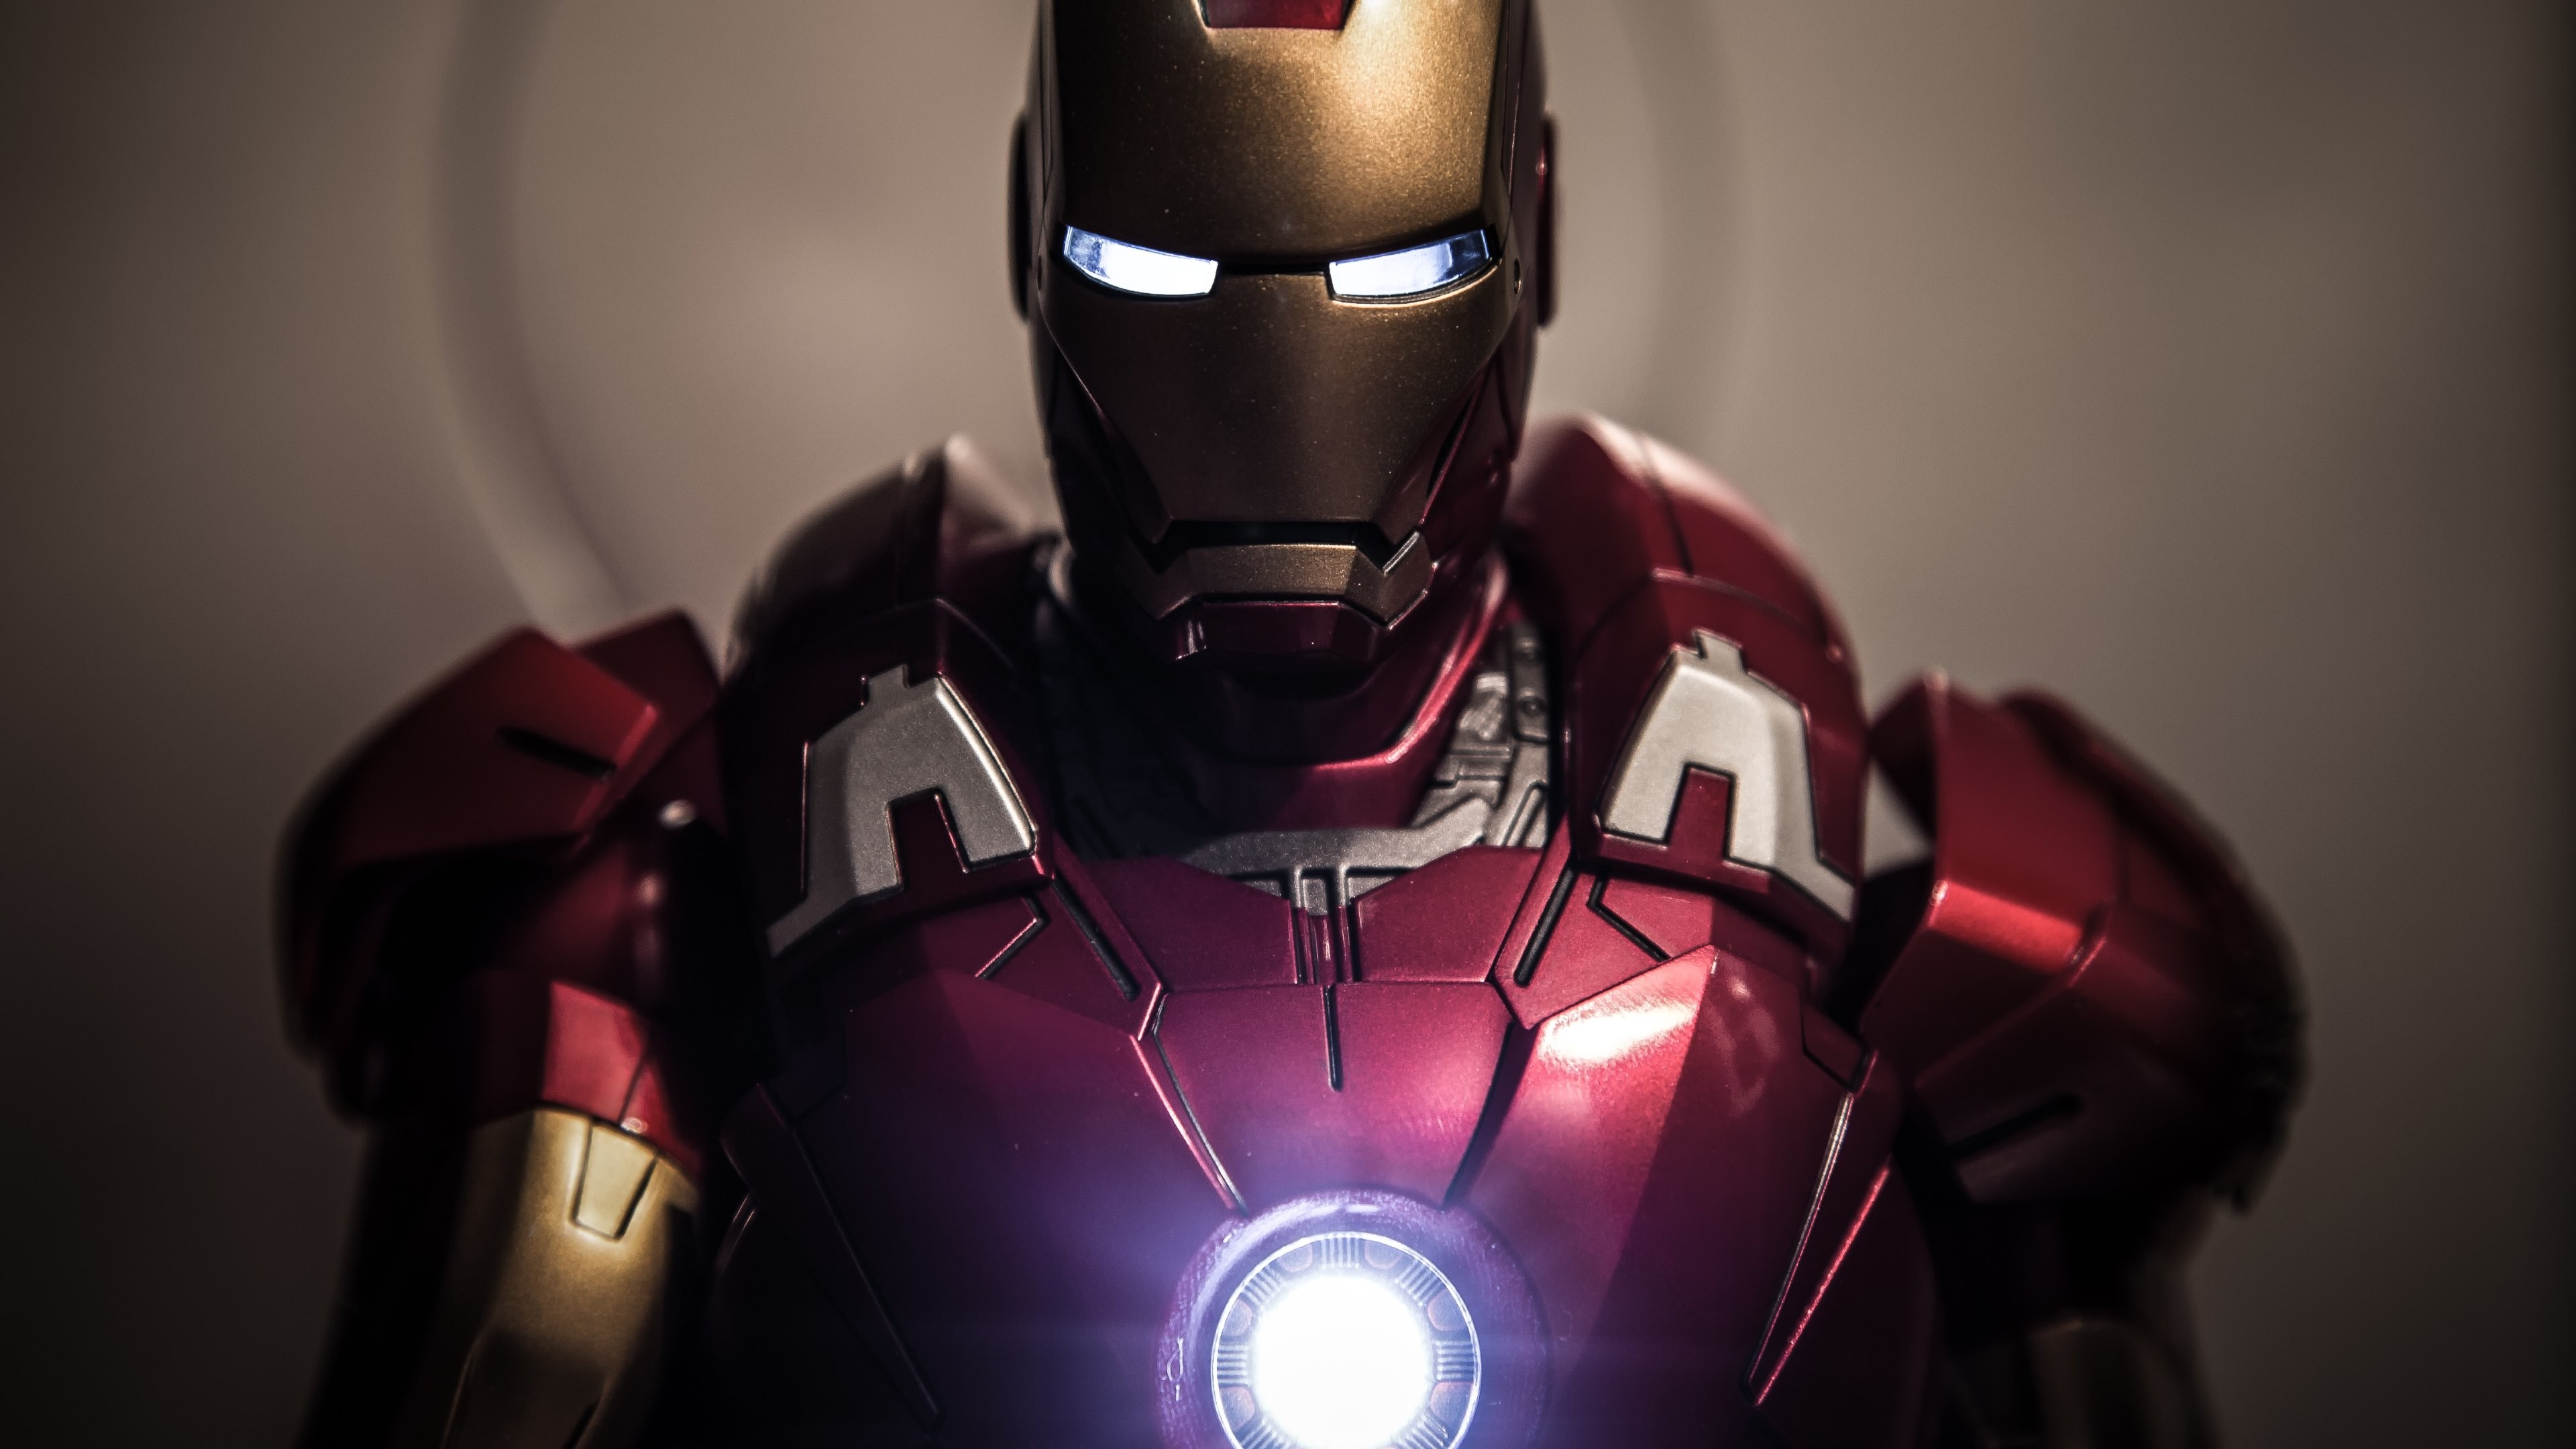 Iron Man Suit 2048x1152 Resolution